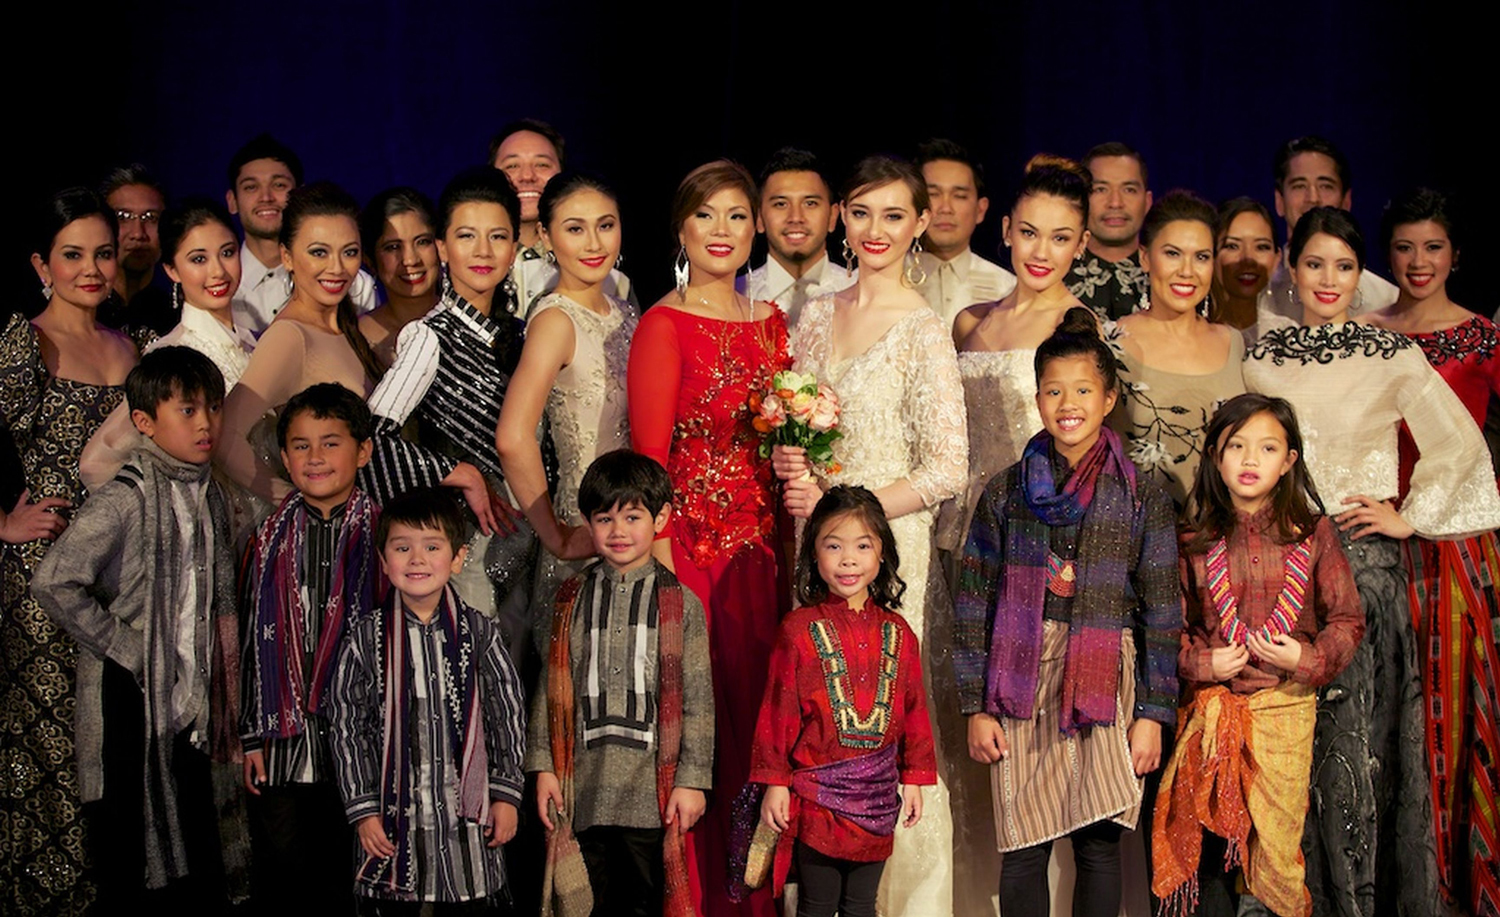 """PIA volunteers at curtain call showing off the various designs of Barge Ramos at the """"Holiday Haute Couture XII"""" fashion show fundraiser  (Photo by iClickforacause.org)"""